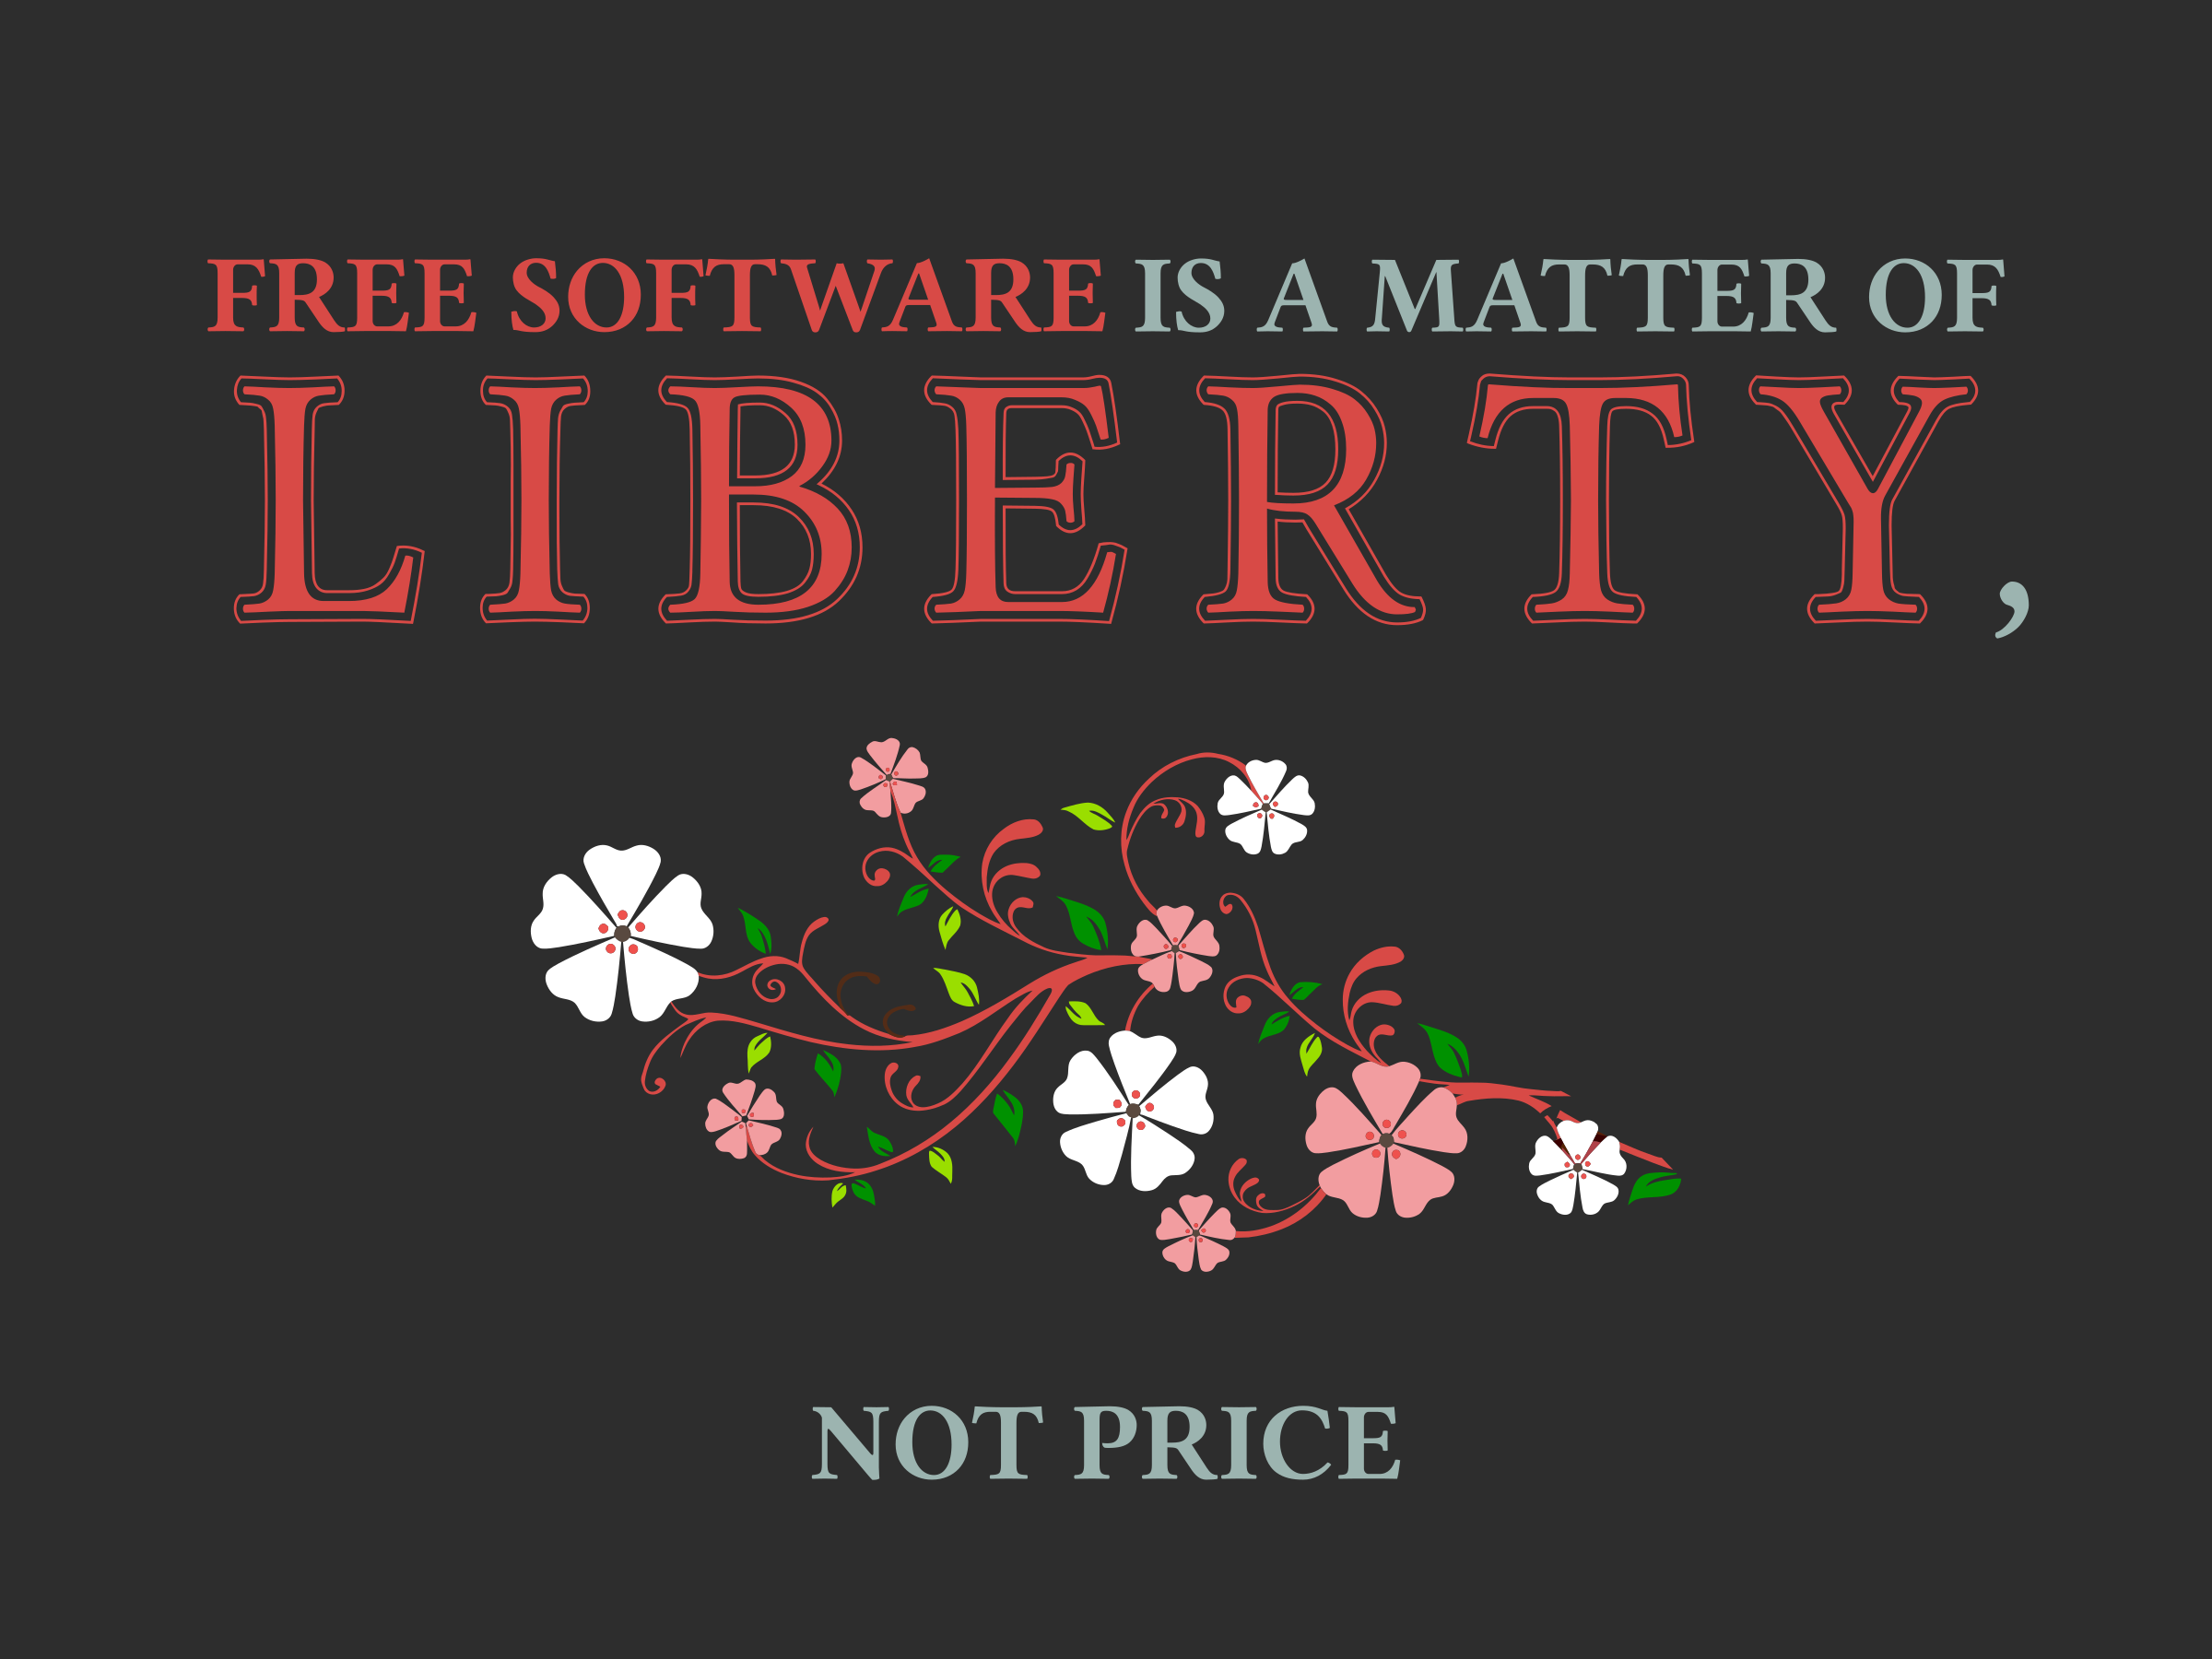 Free Software is about Liberty by eternaltyro